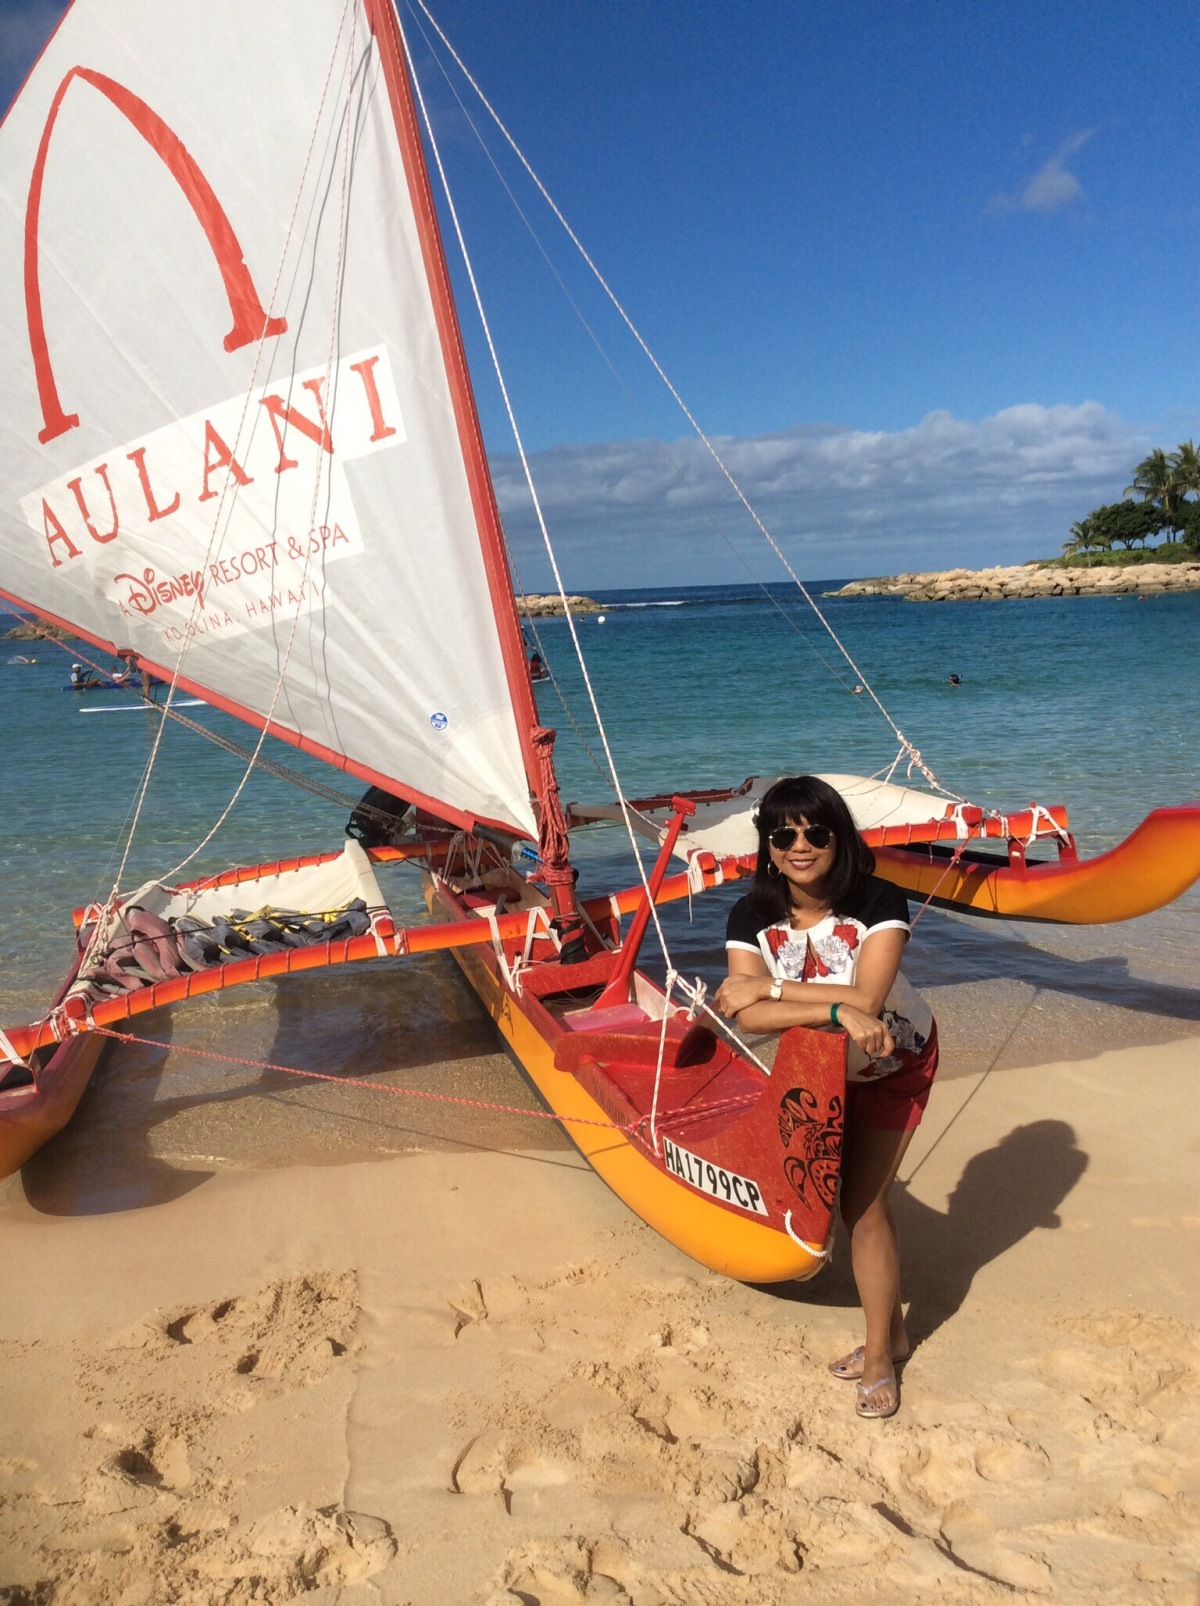 Hanging loose at Disney Aulani Resort, Ko Olina, Hawaii